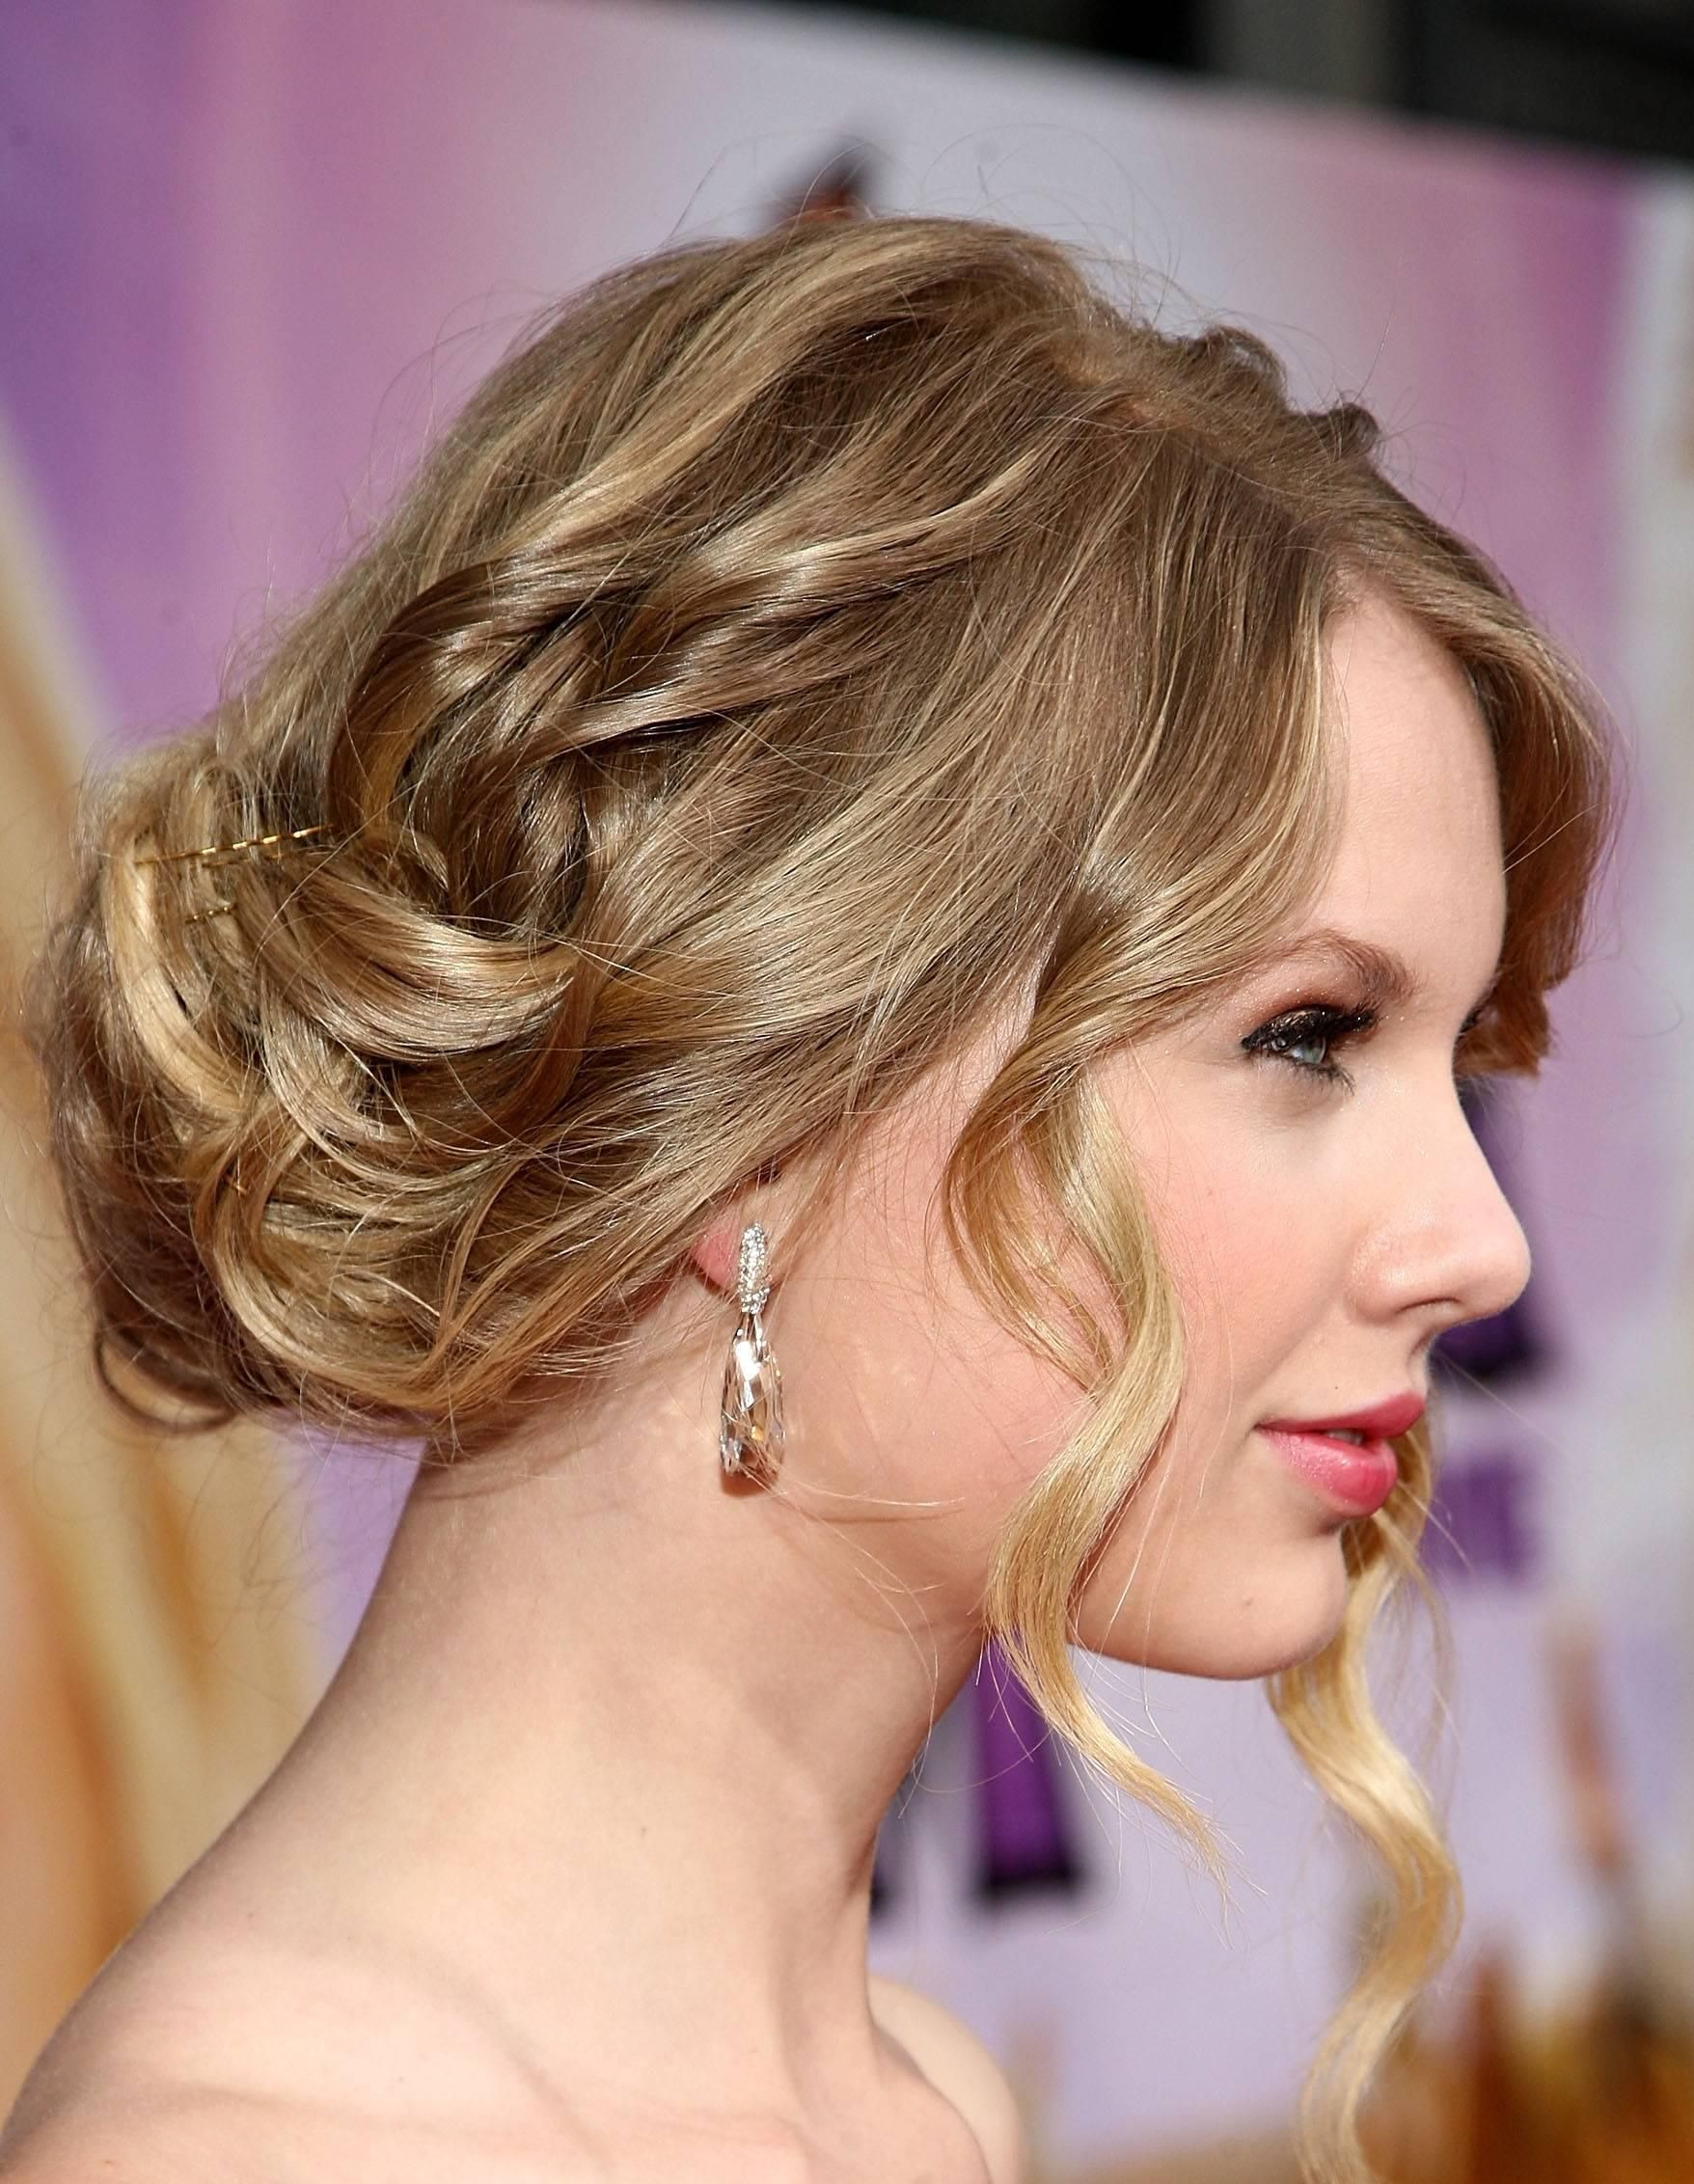 Prom Hairstyles For Short Hair 15 pretty prom hairstyles for short hair Prom Updo Hairstyles Short Hair 75 Hair Pinterest Short Hair Prom Hairstyles And Prom Updo Hairstyles